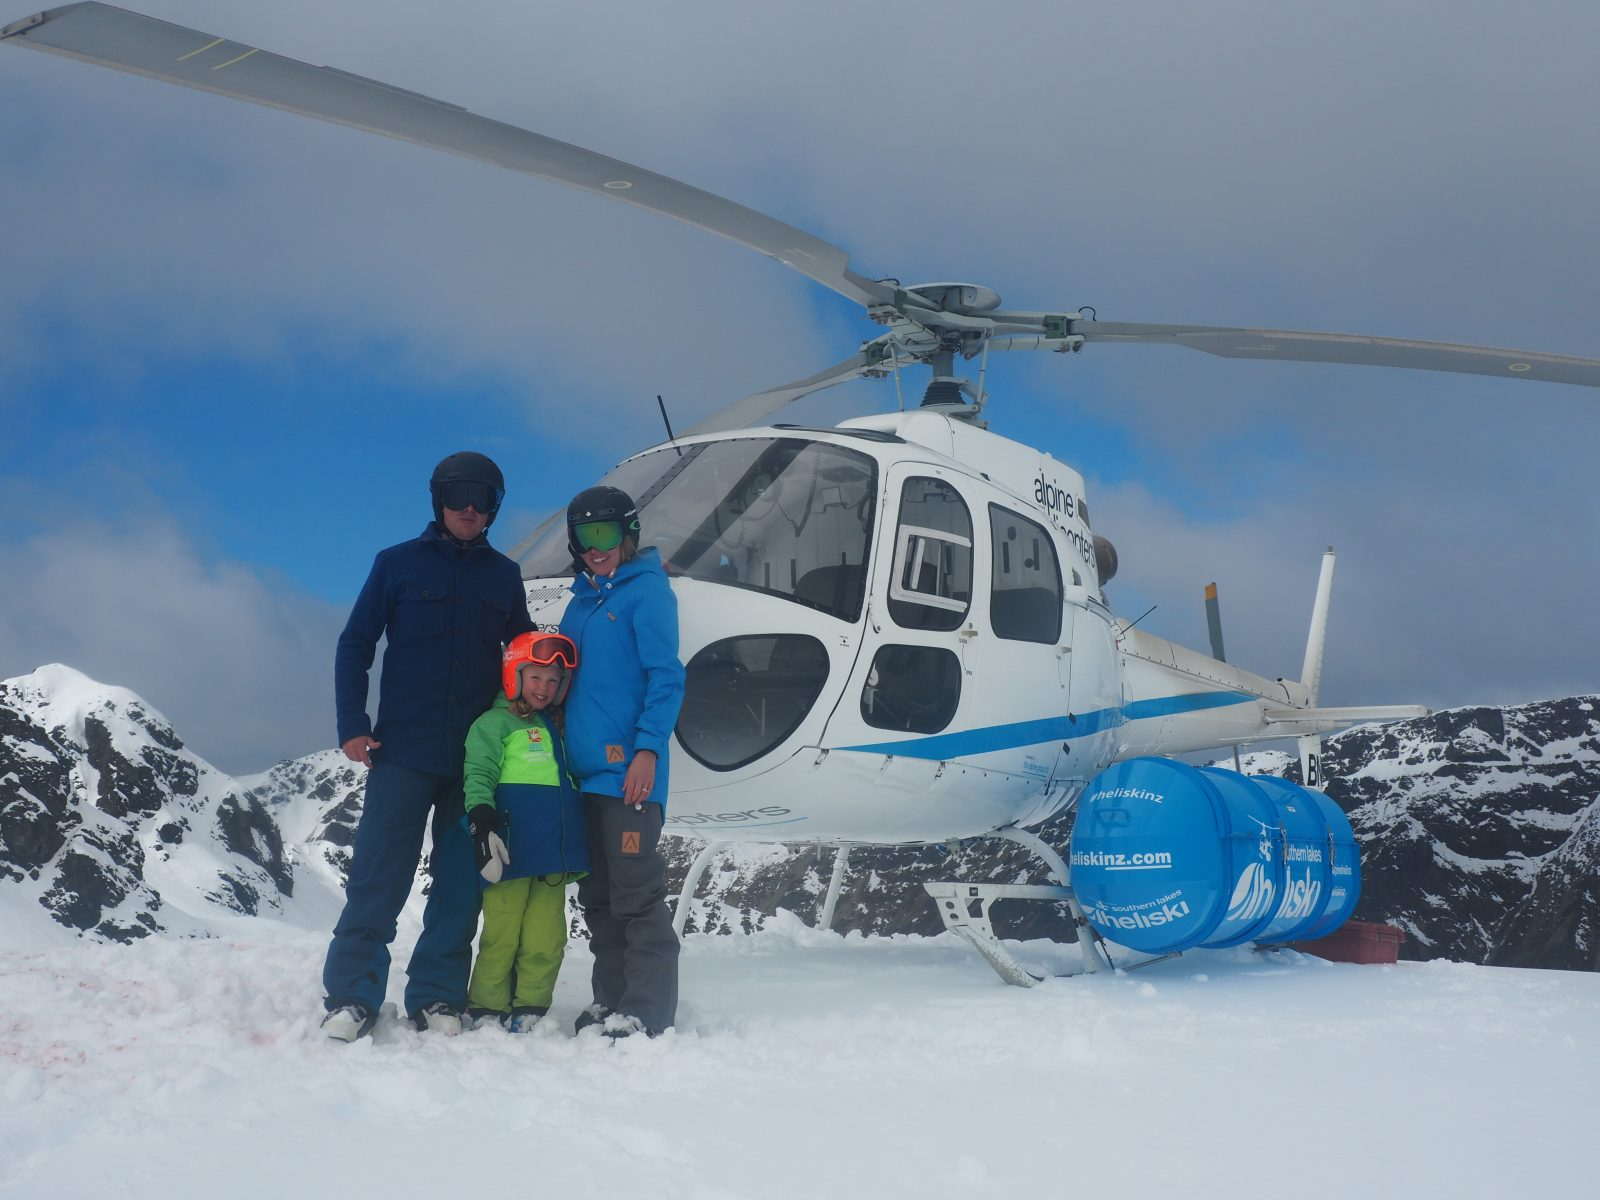 You are never too young to heliski….